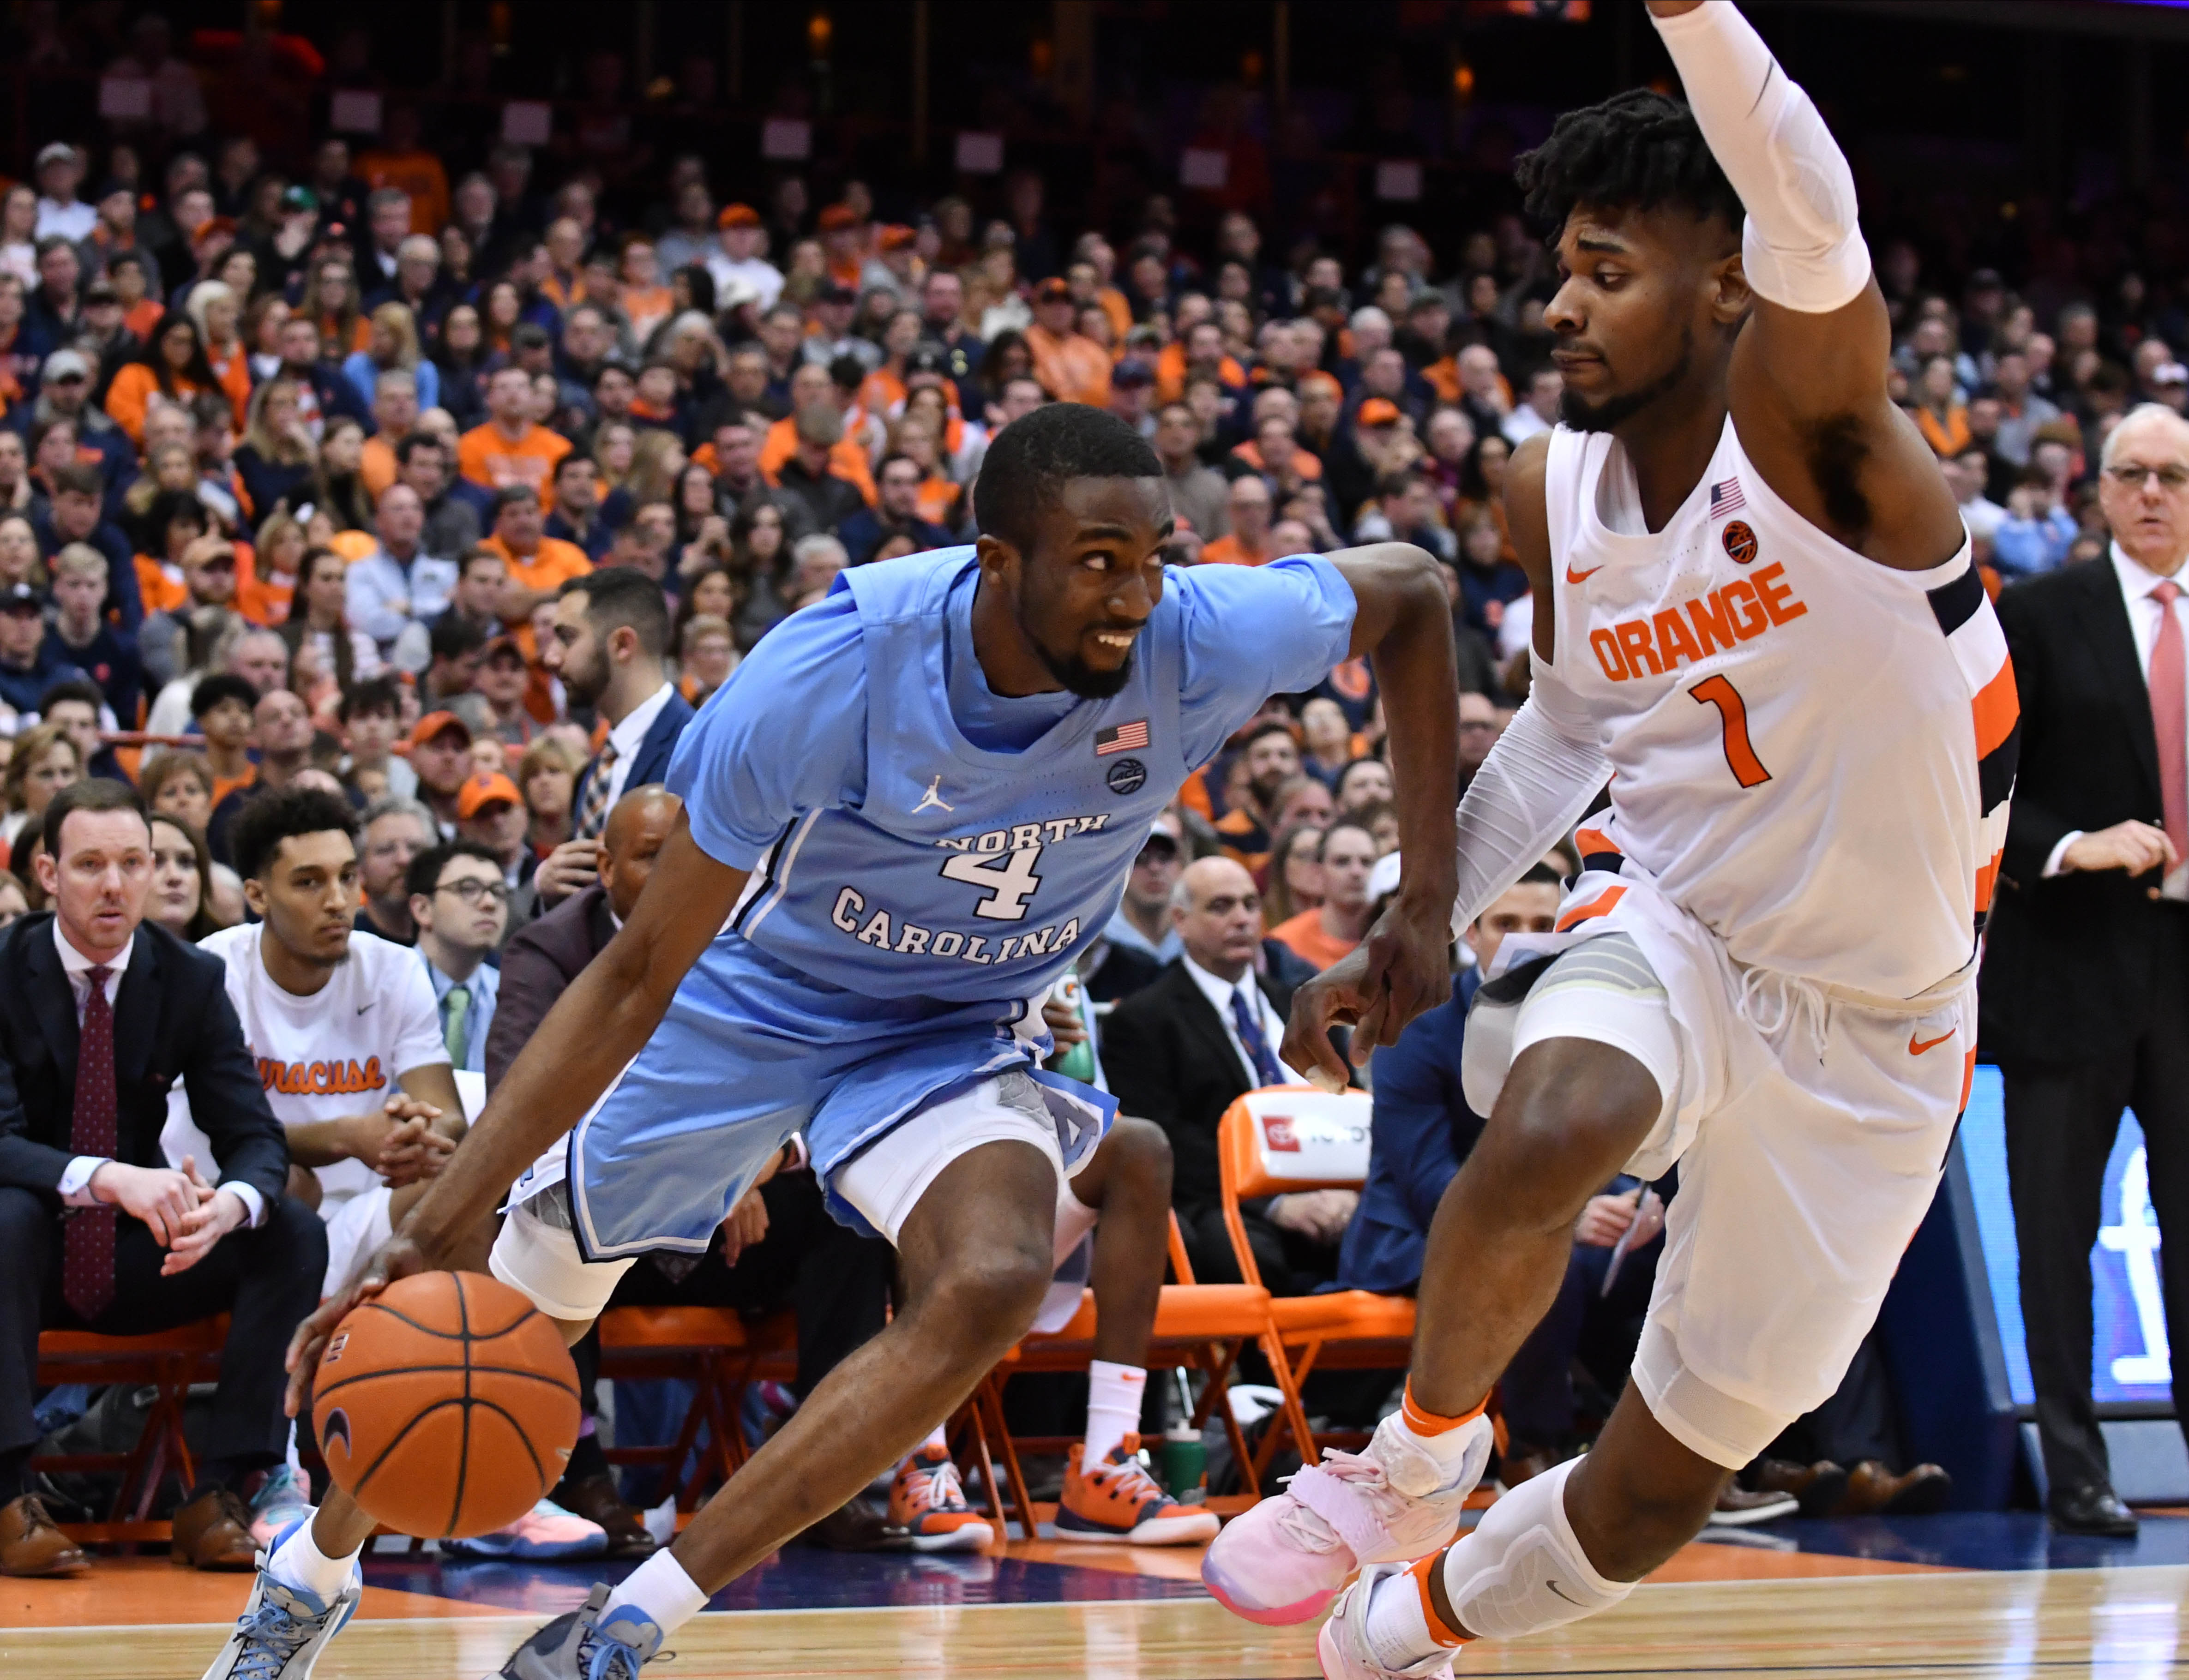 North Carolina Tar Heels guard Brandon Robinson works to break a full court press from Syracuse Orange forward Quincy Guerrier (1) in the second half at the Carrier Dome.